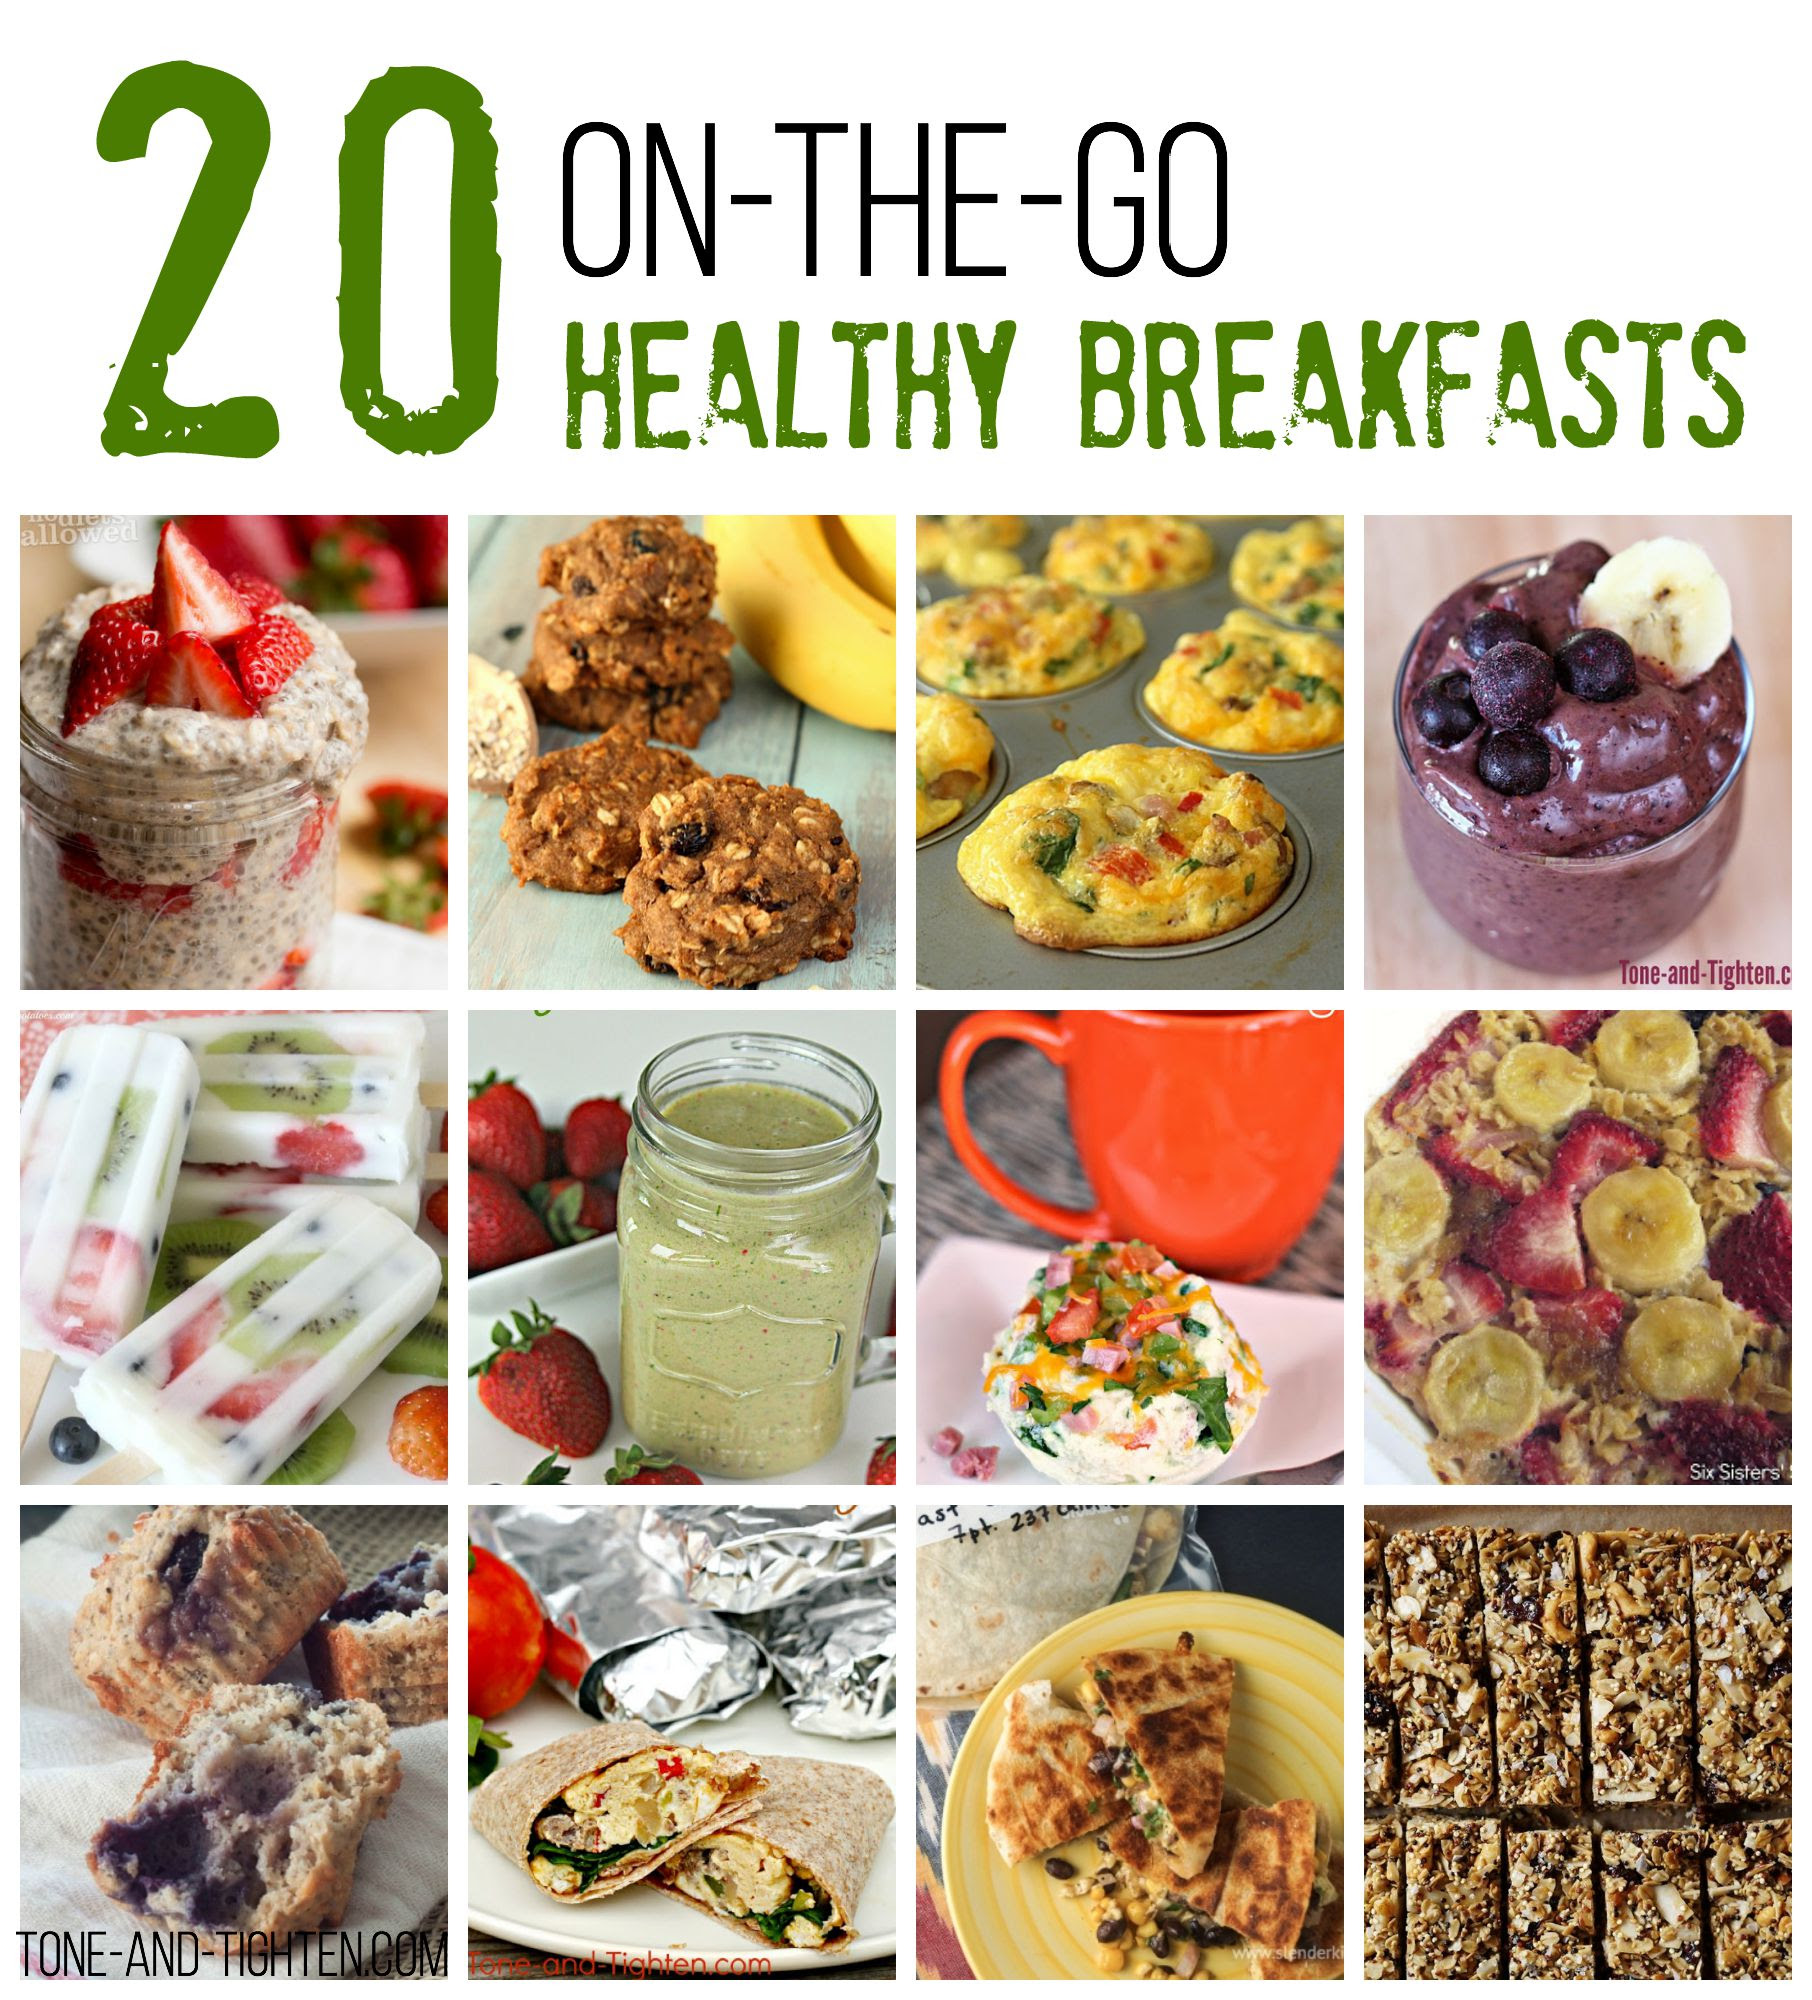 20 On-The-Go Healthy Breakfast Recipes | Tone and Tighten